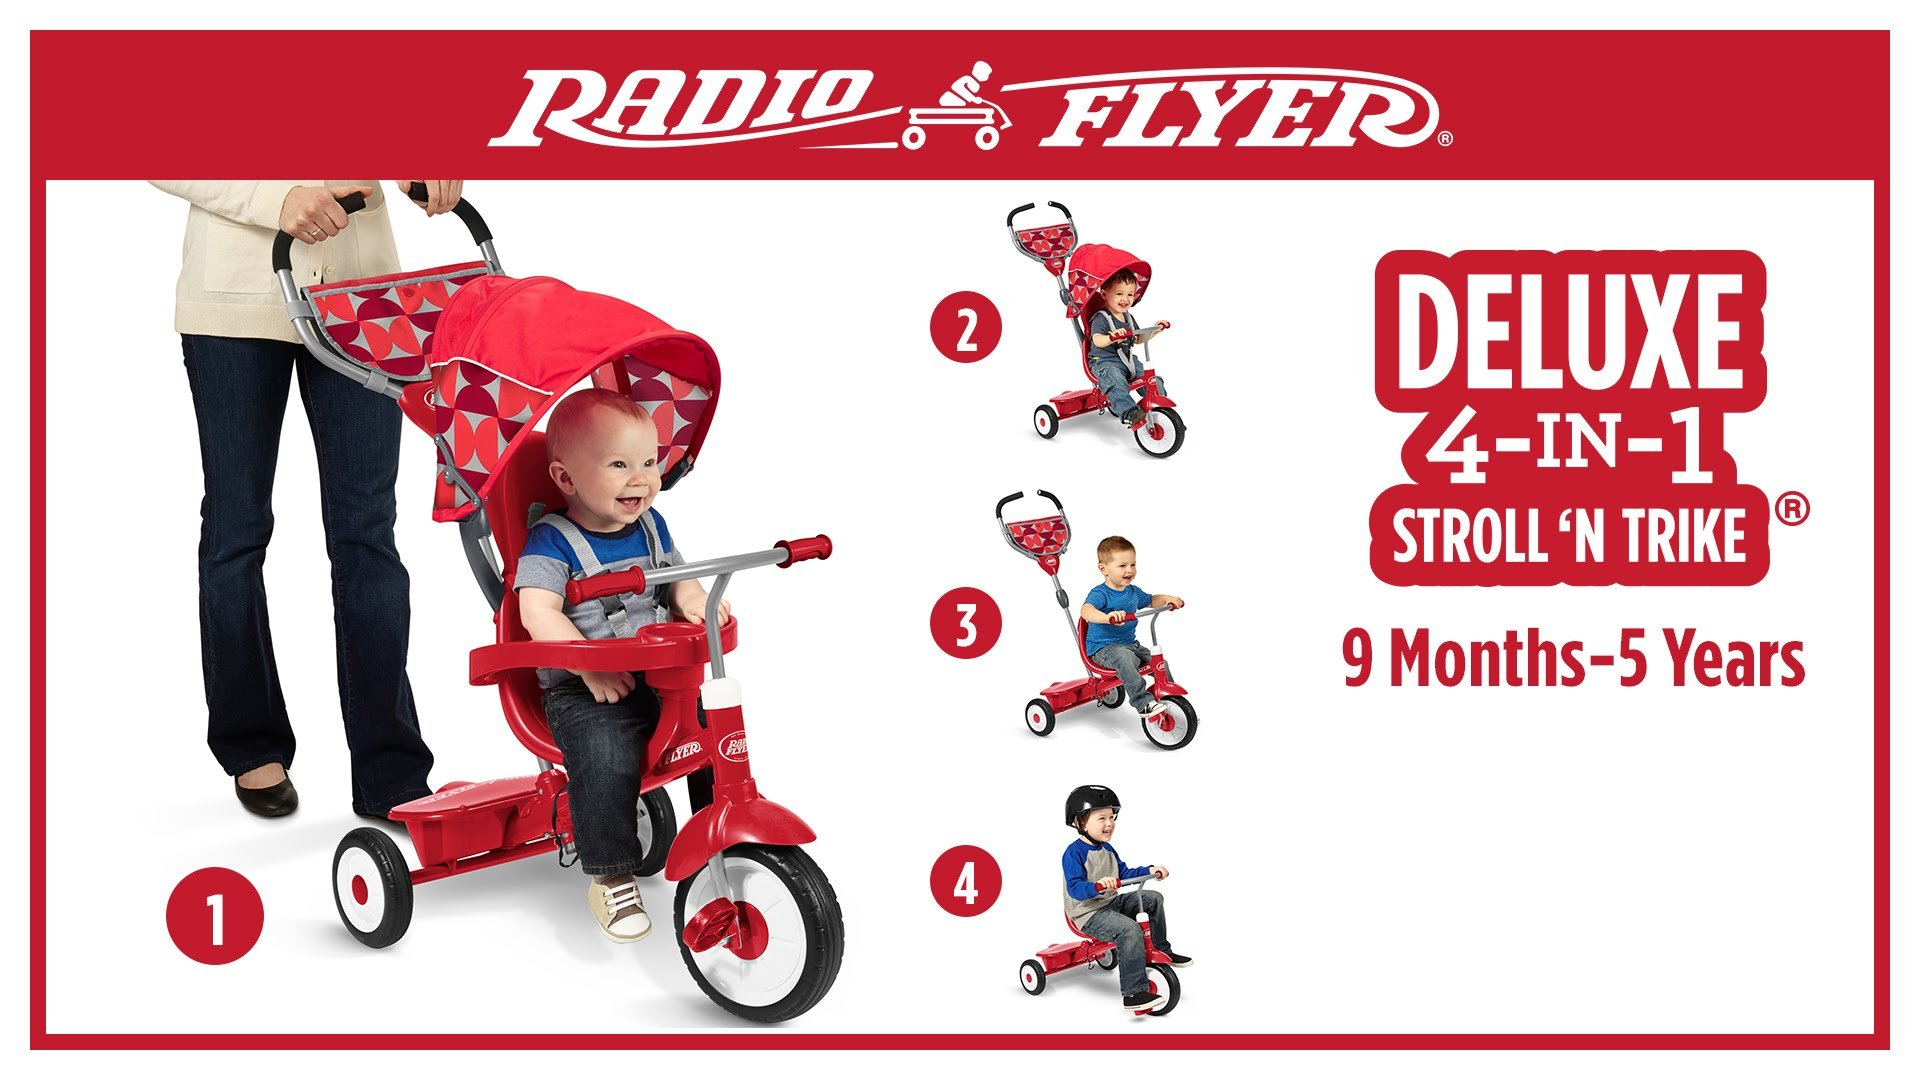 radio flyer 4 in 1 trikes for kids babies